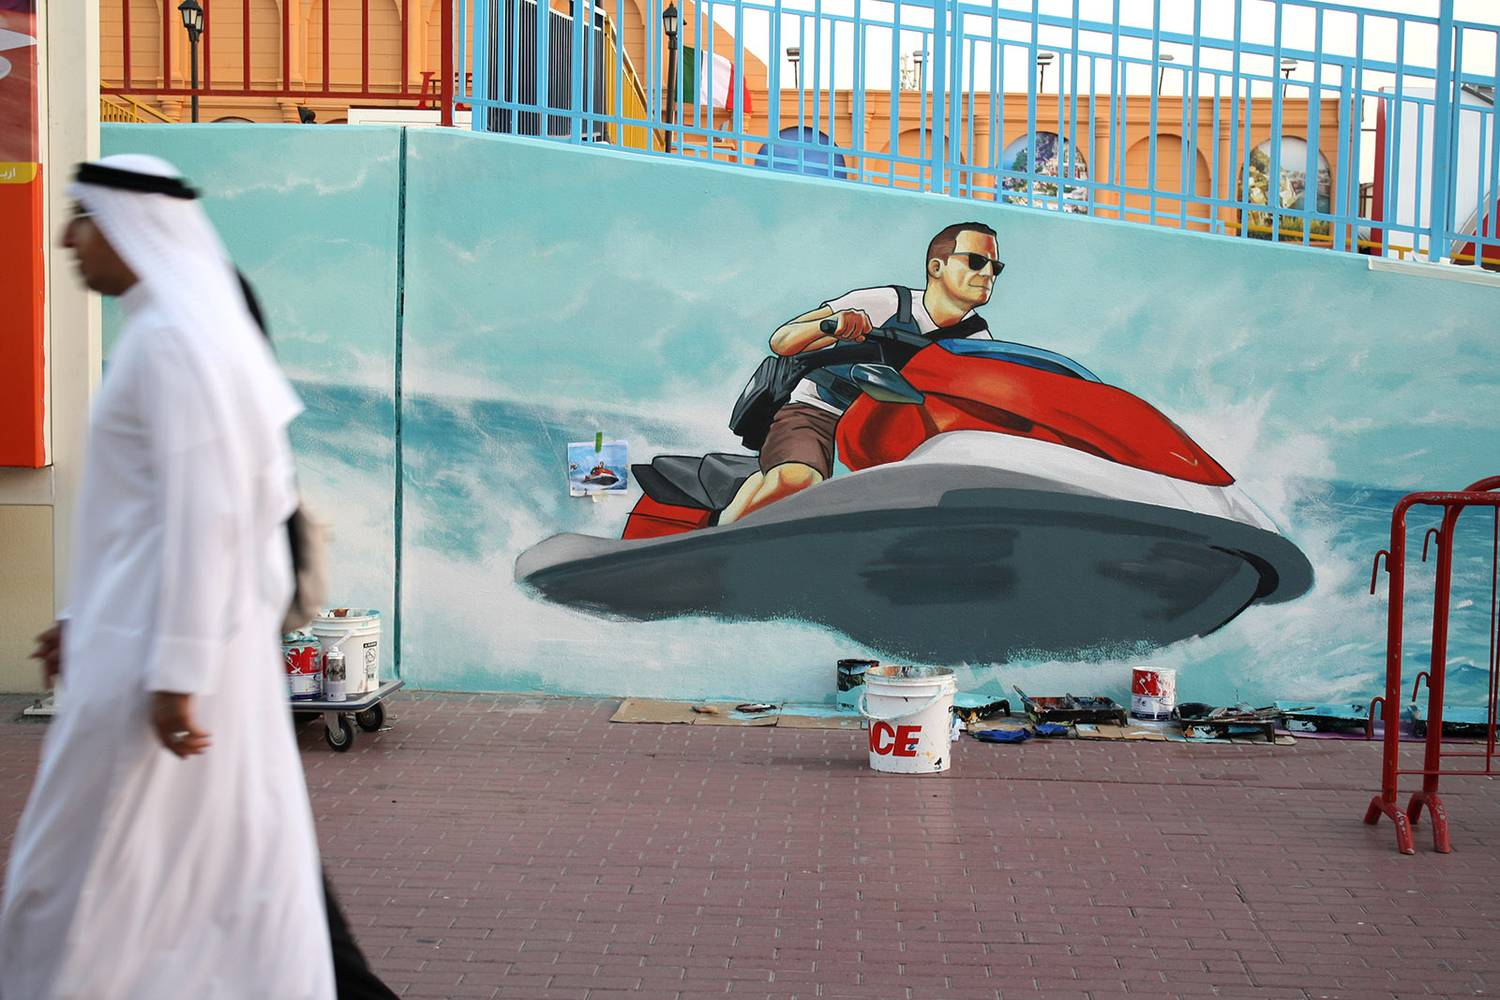 Dubai Global Village - Jetski- Neopaint Works